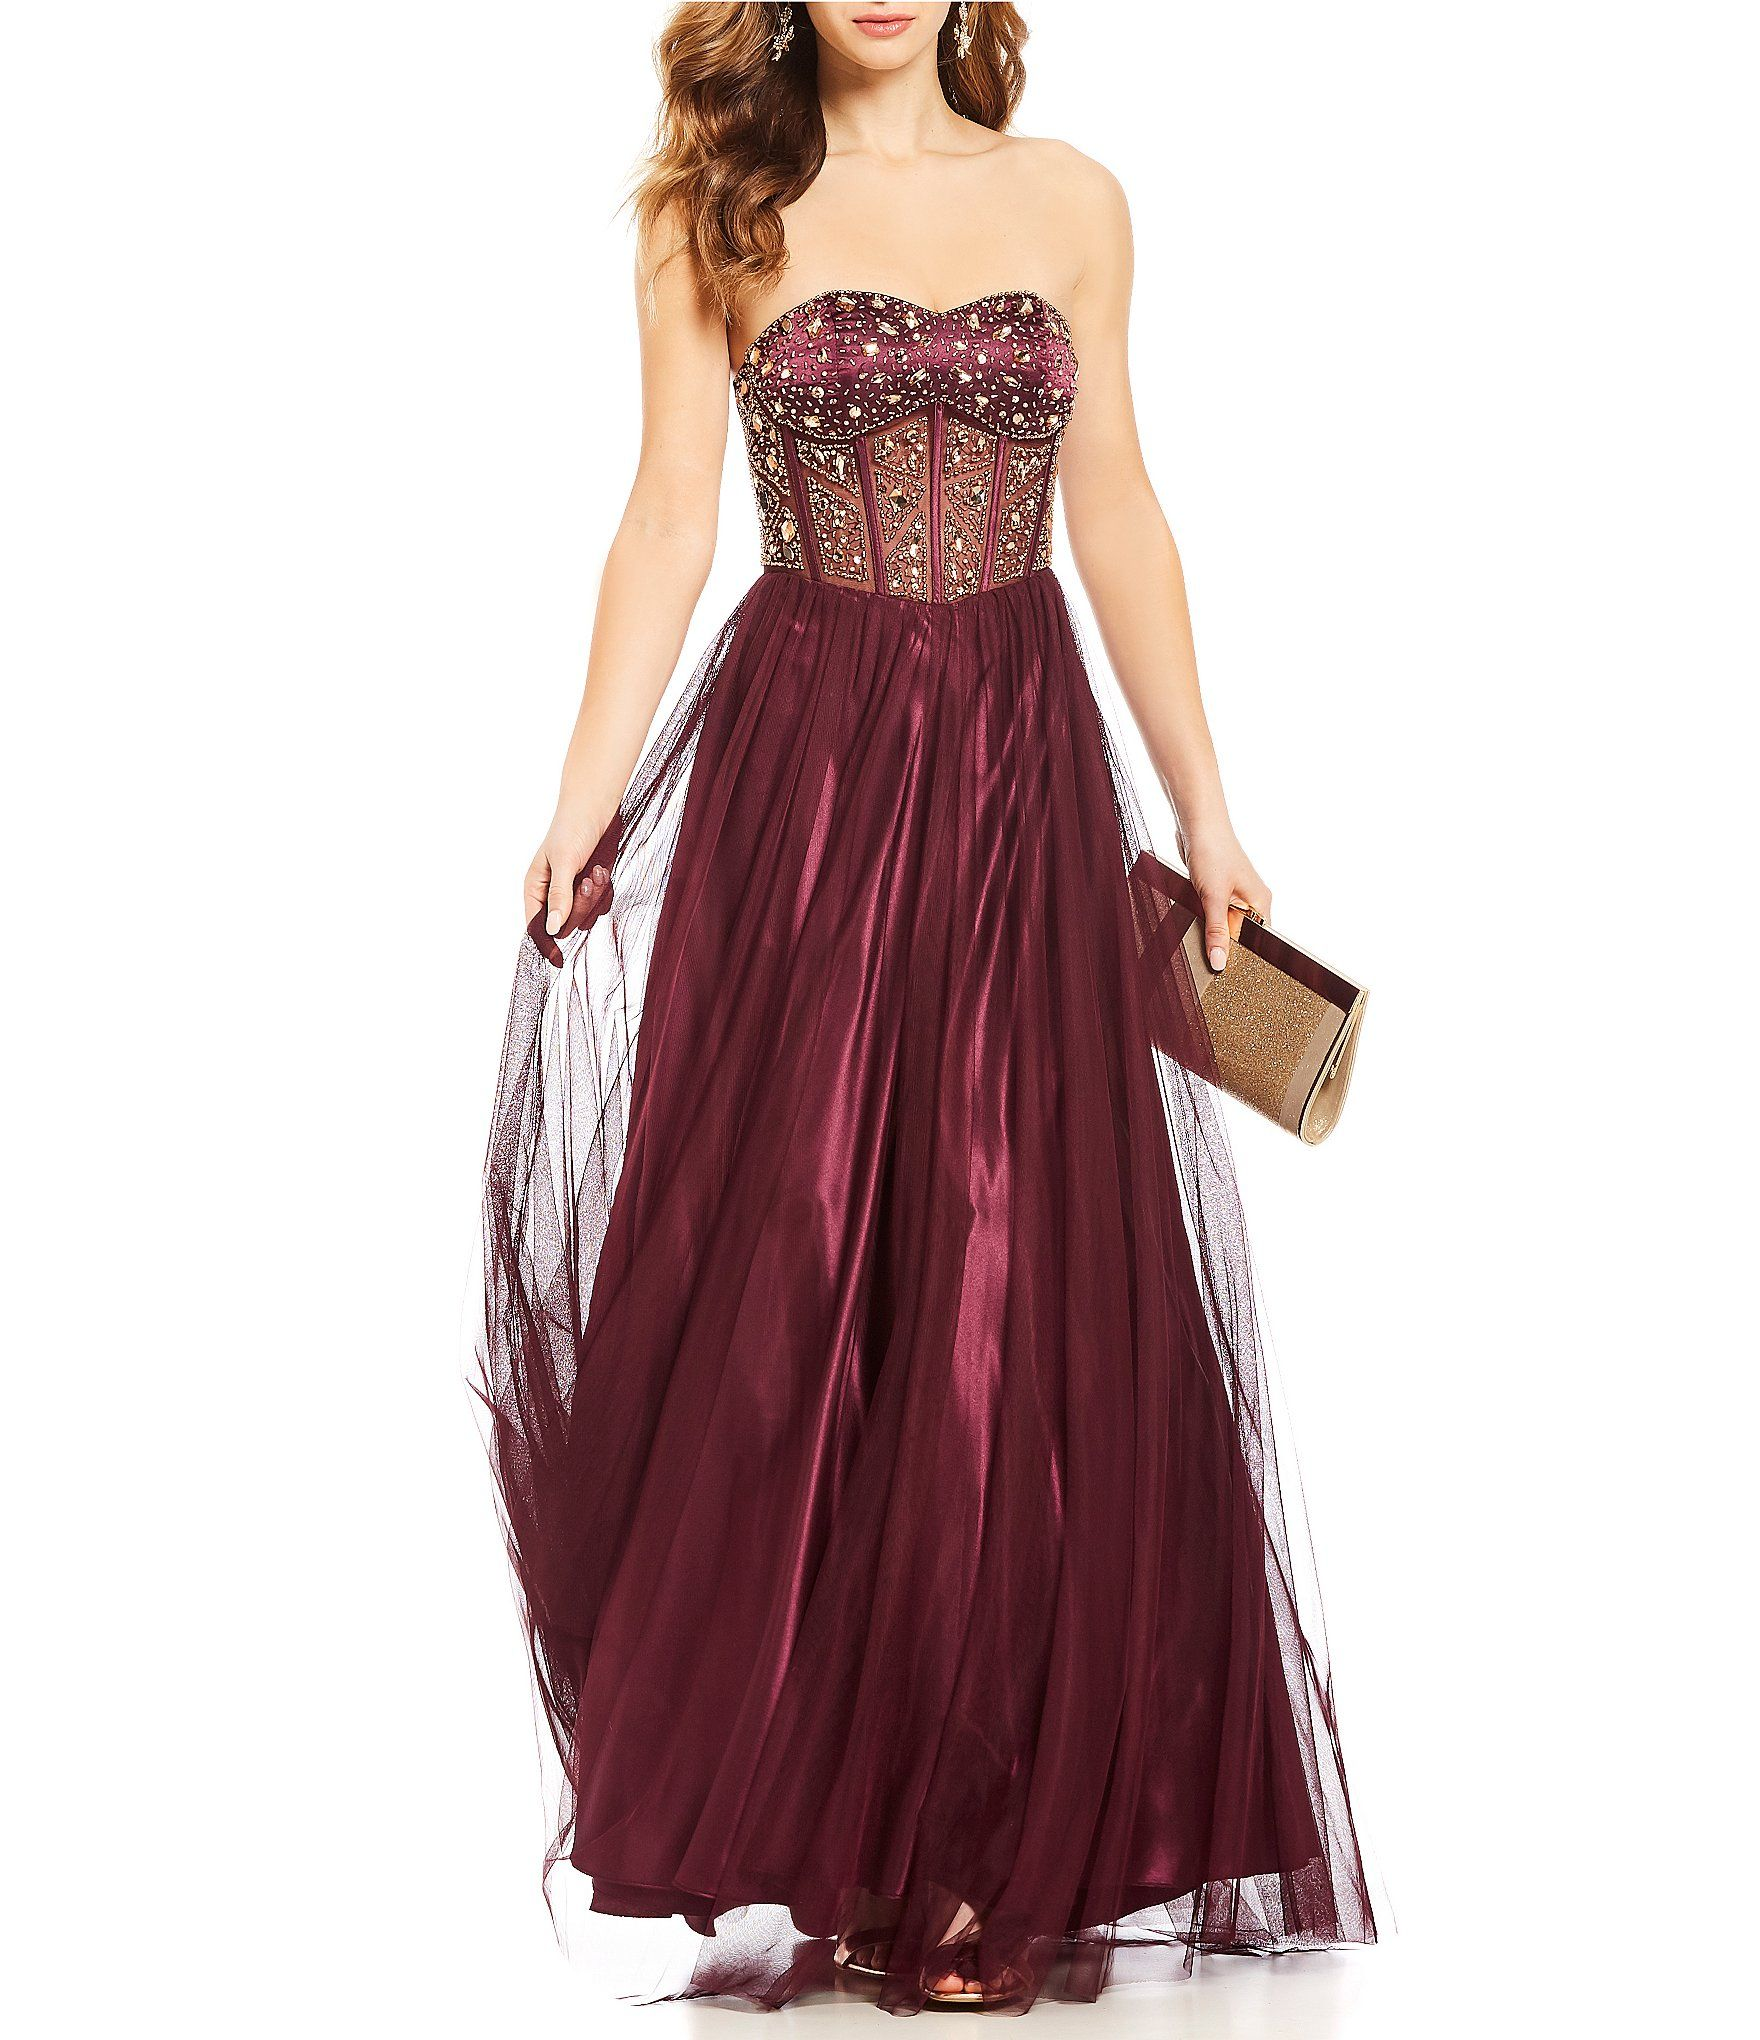 Shop for blondie nites strapless embellished corset bodice ball gown